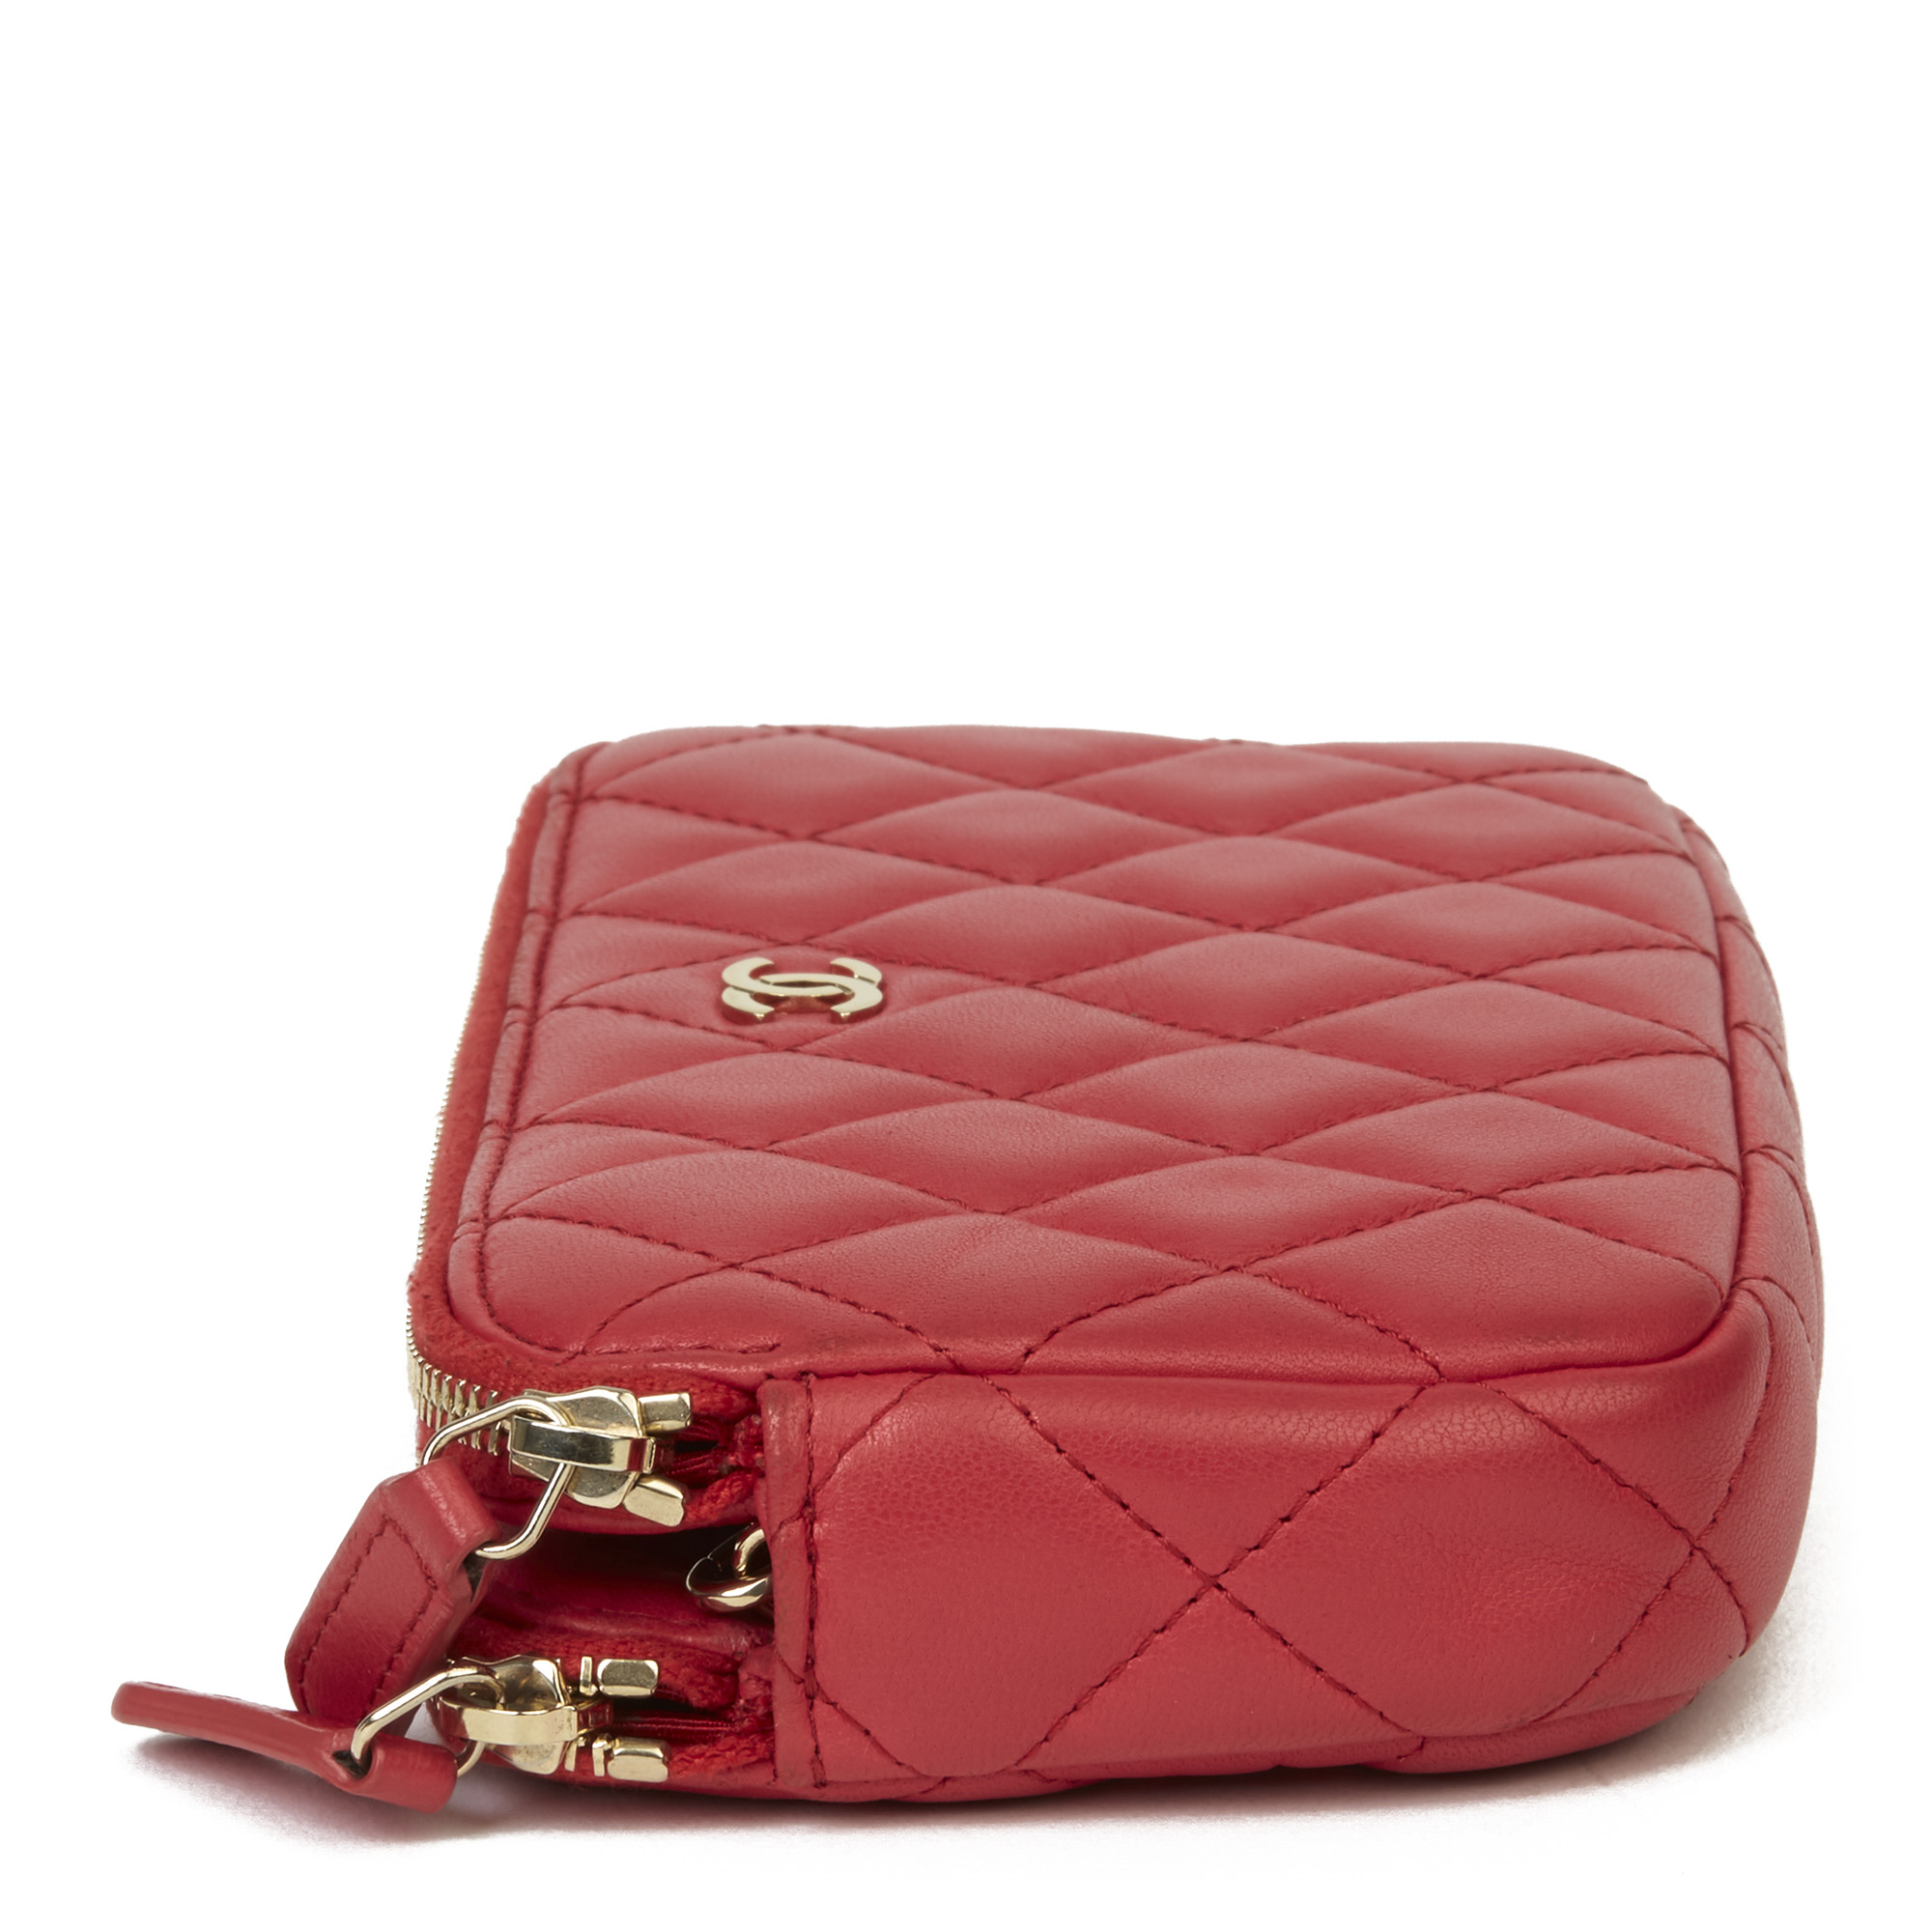 Chanel Red Quilted Lambskin Double Zip Wallet-on-Chain WOC - Image 11 of 11